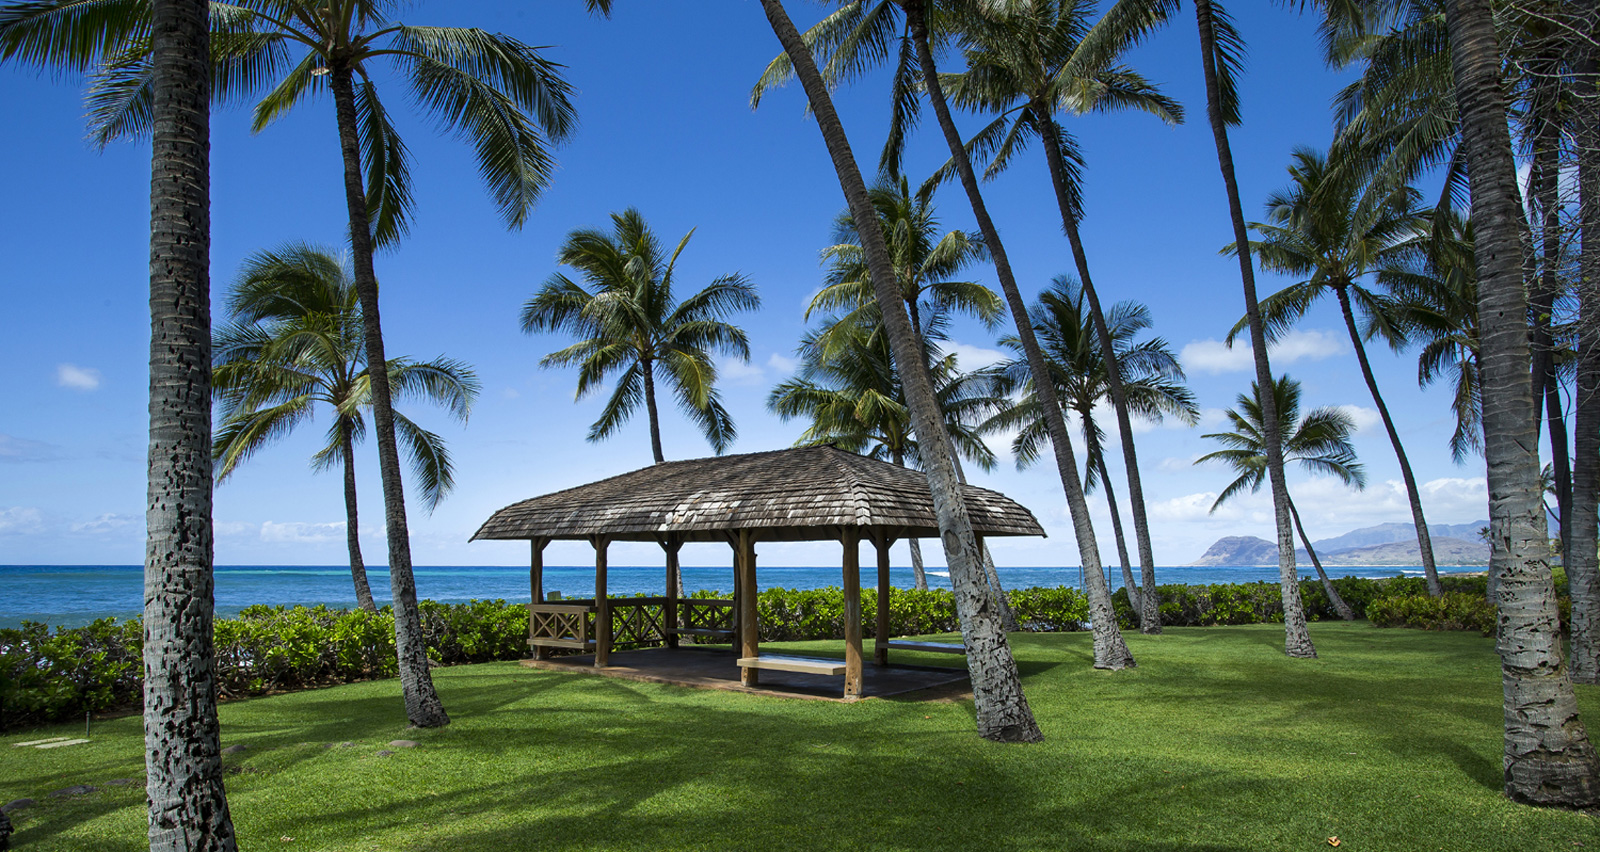 A thatched pergola stands on a lawn amid palm trees beside the ocean